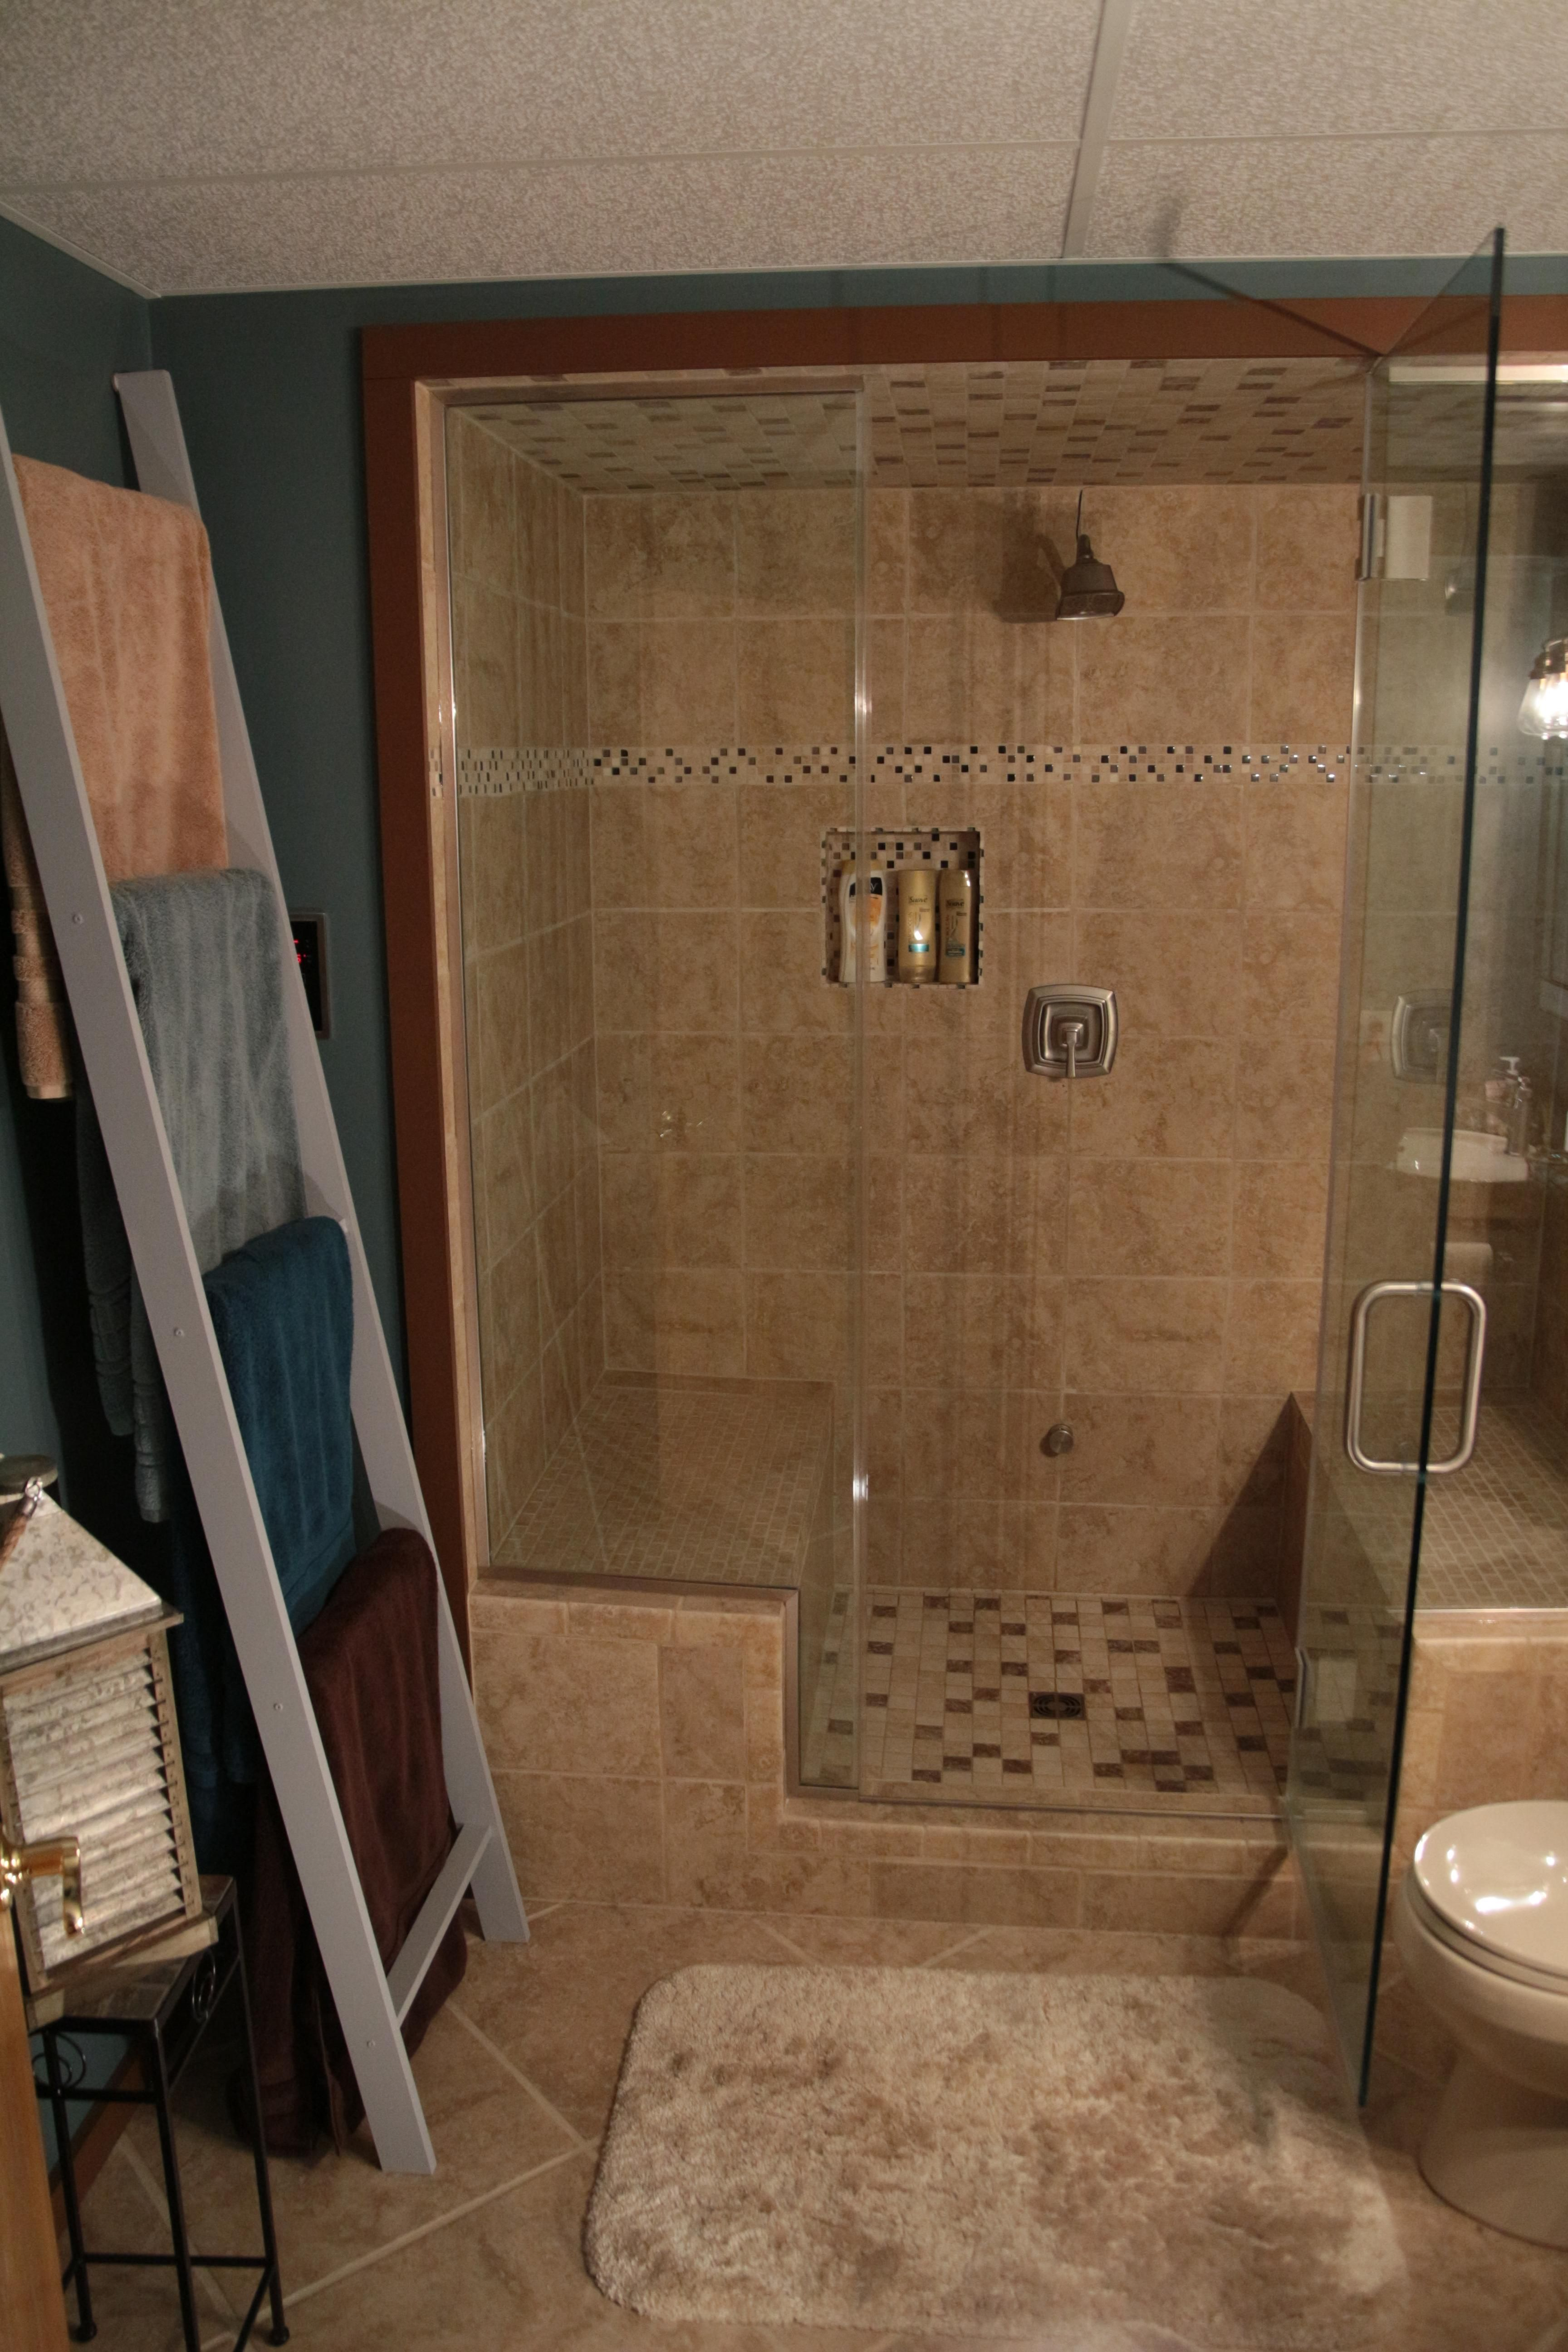 renovation: old bathroom to new steam room (#quickcrafter) | best of